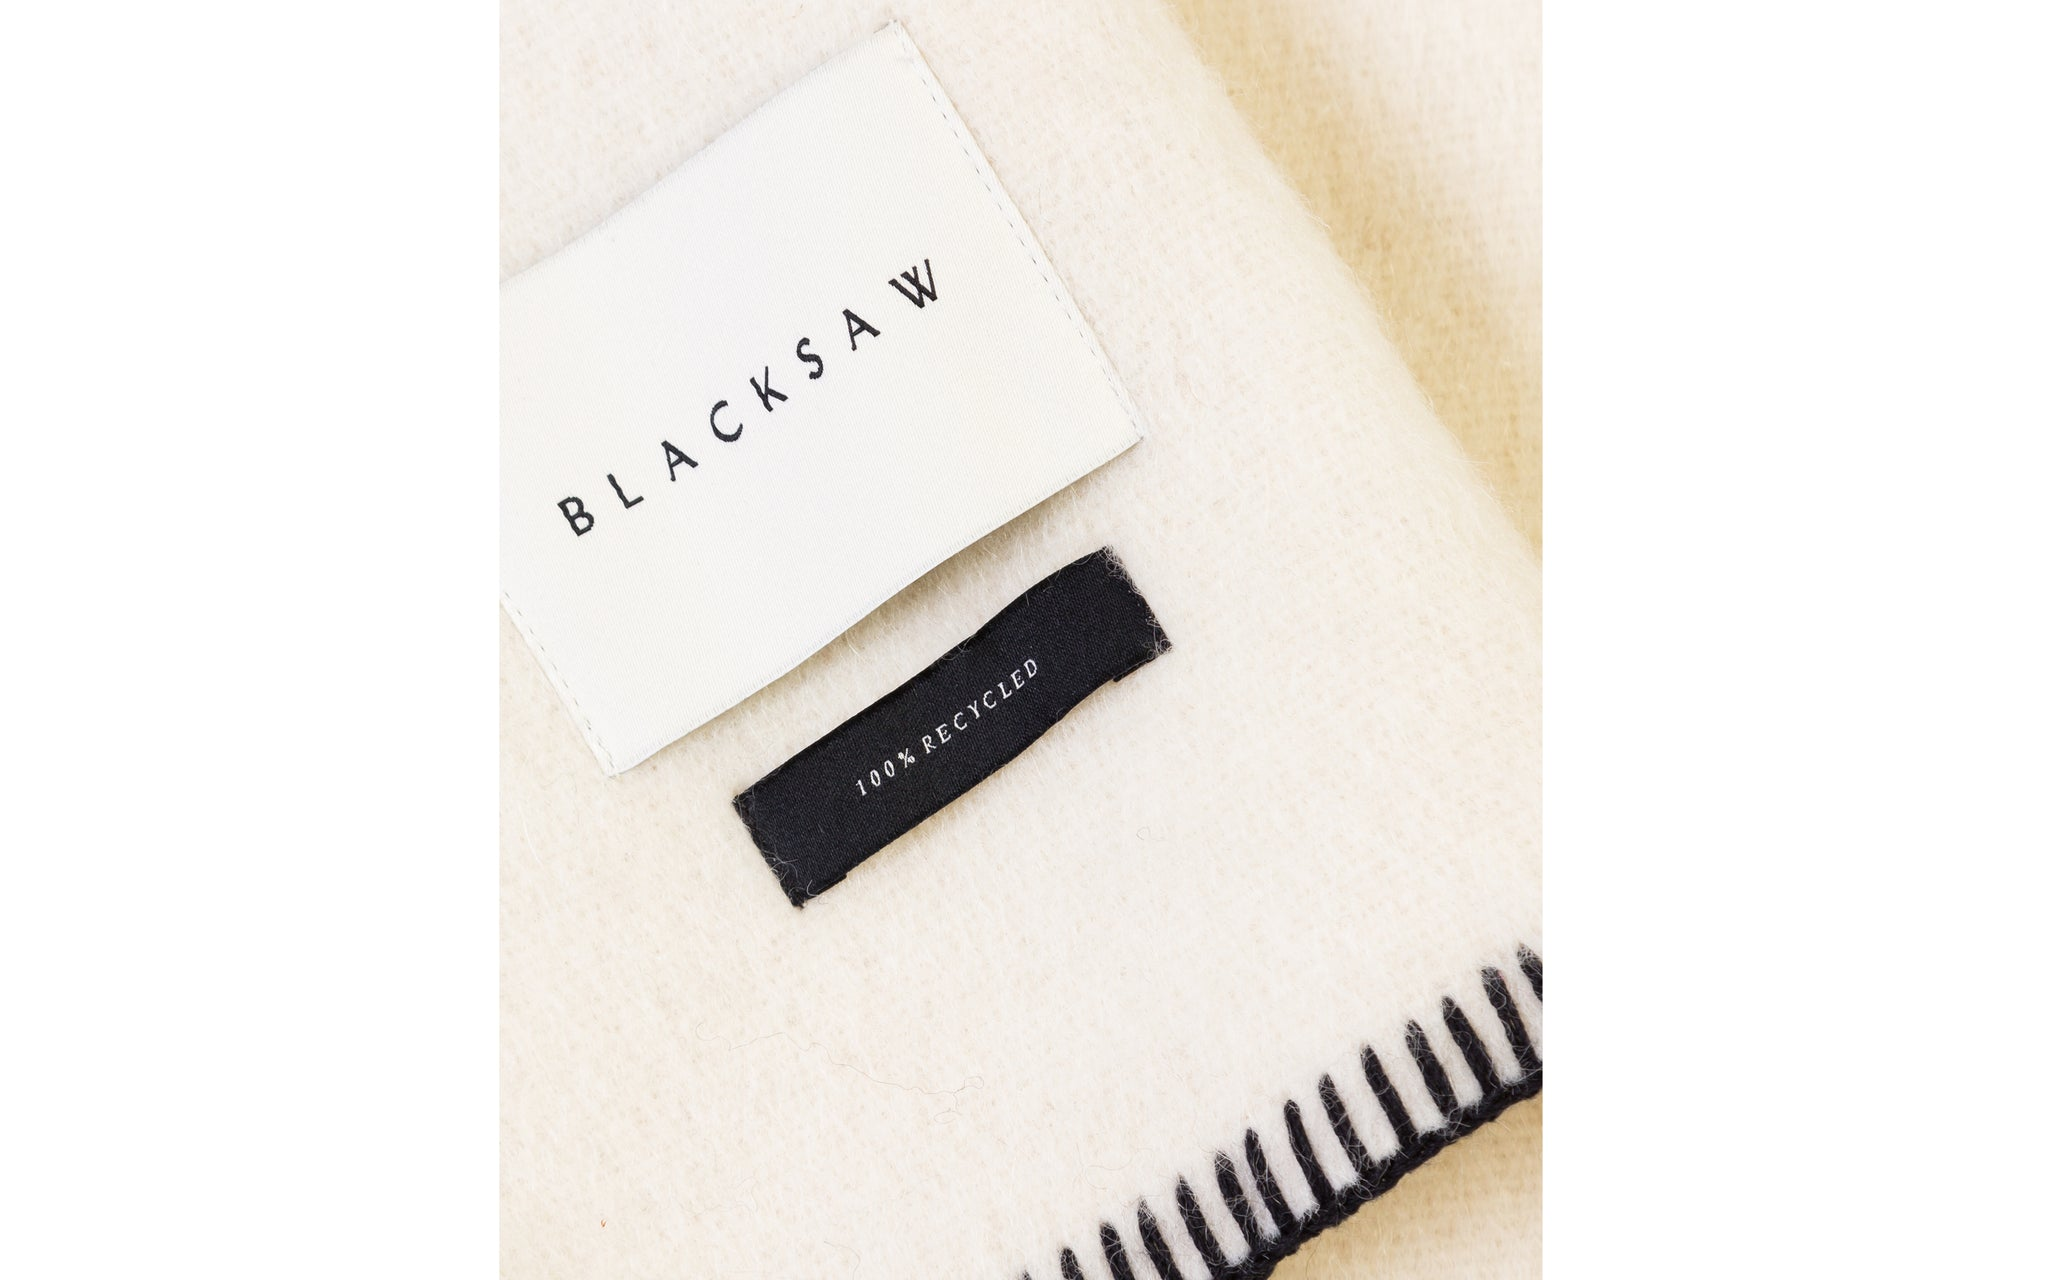 BLACKSAW SIEMPRE RECYCLED ALPACA BLANKET. A MINIMAL STATEMENT PIECE